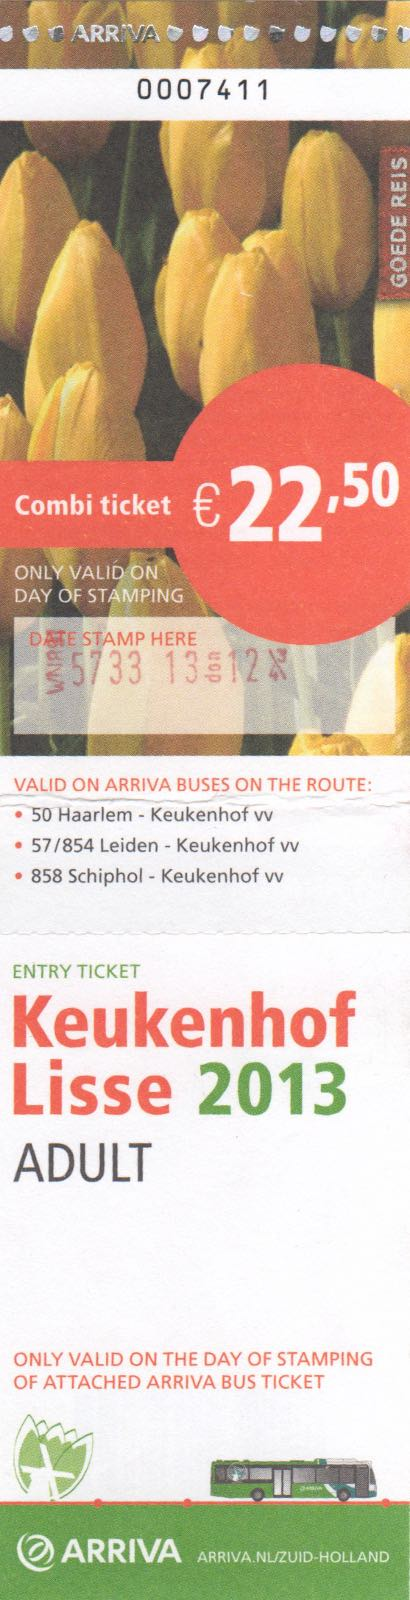 ticket for Arriva bus and entrance to Keukenhof (2013)